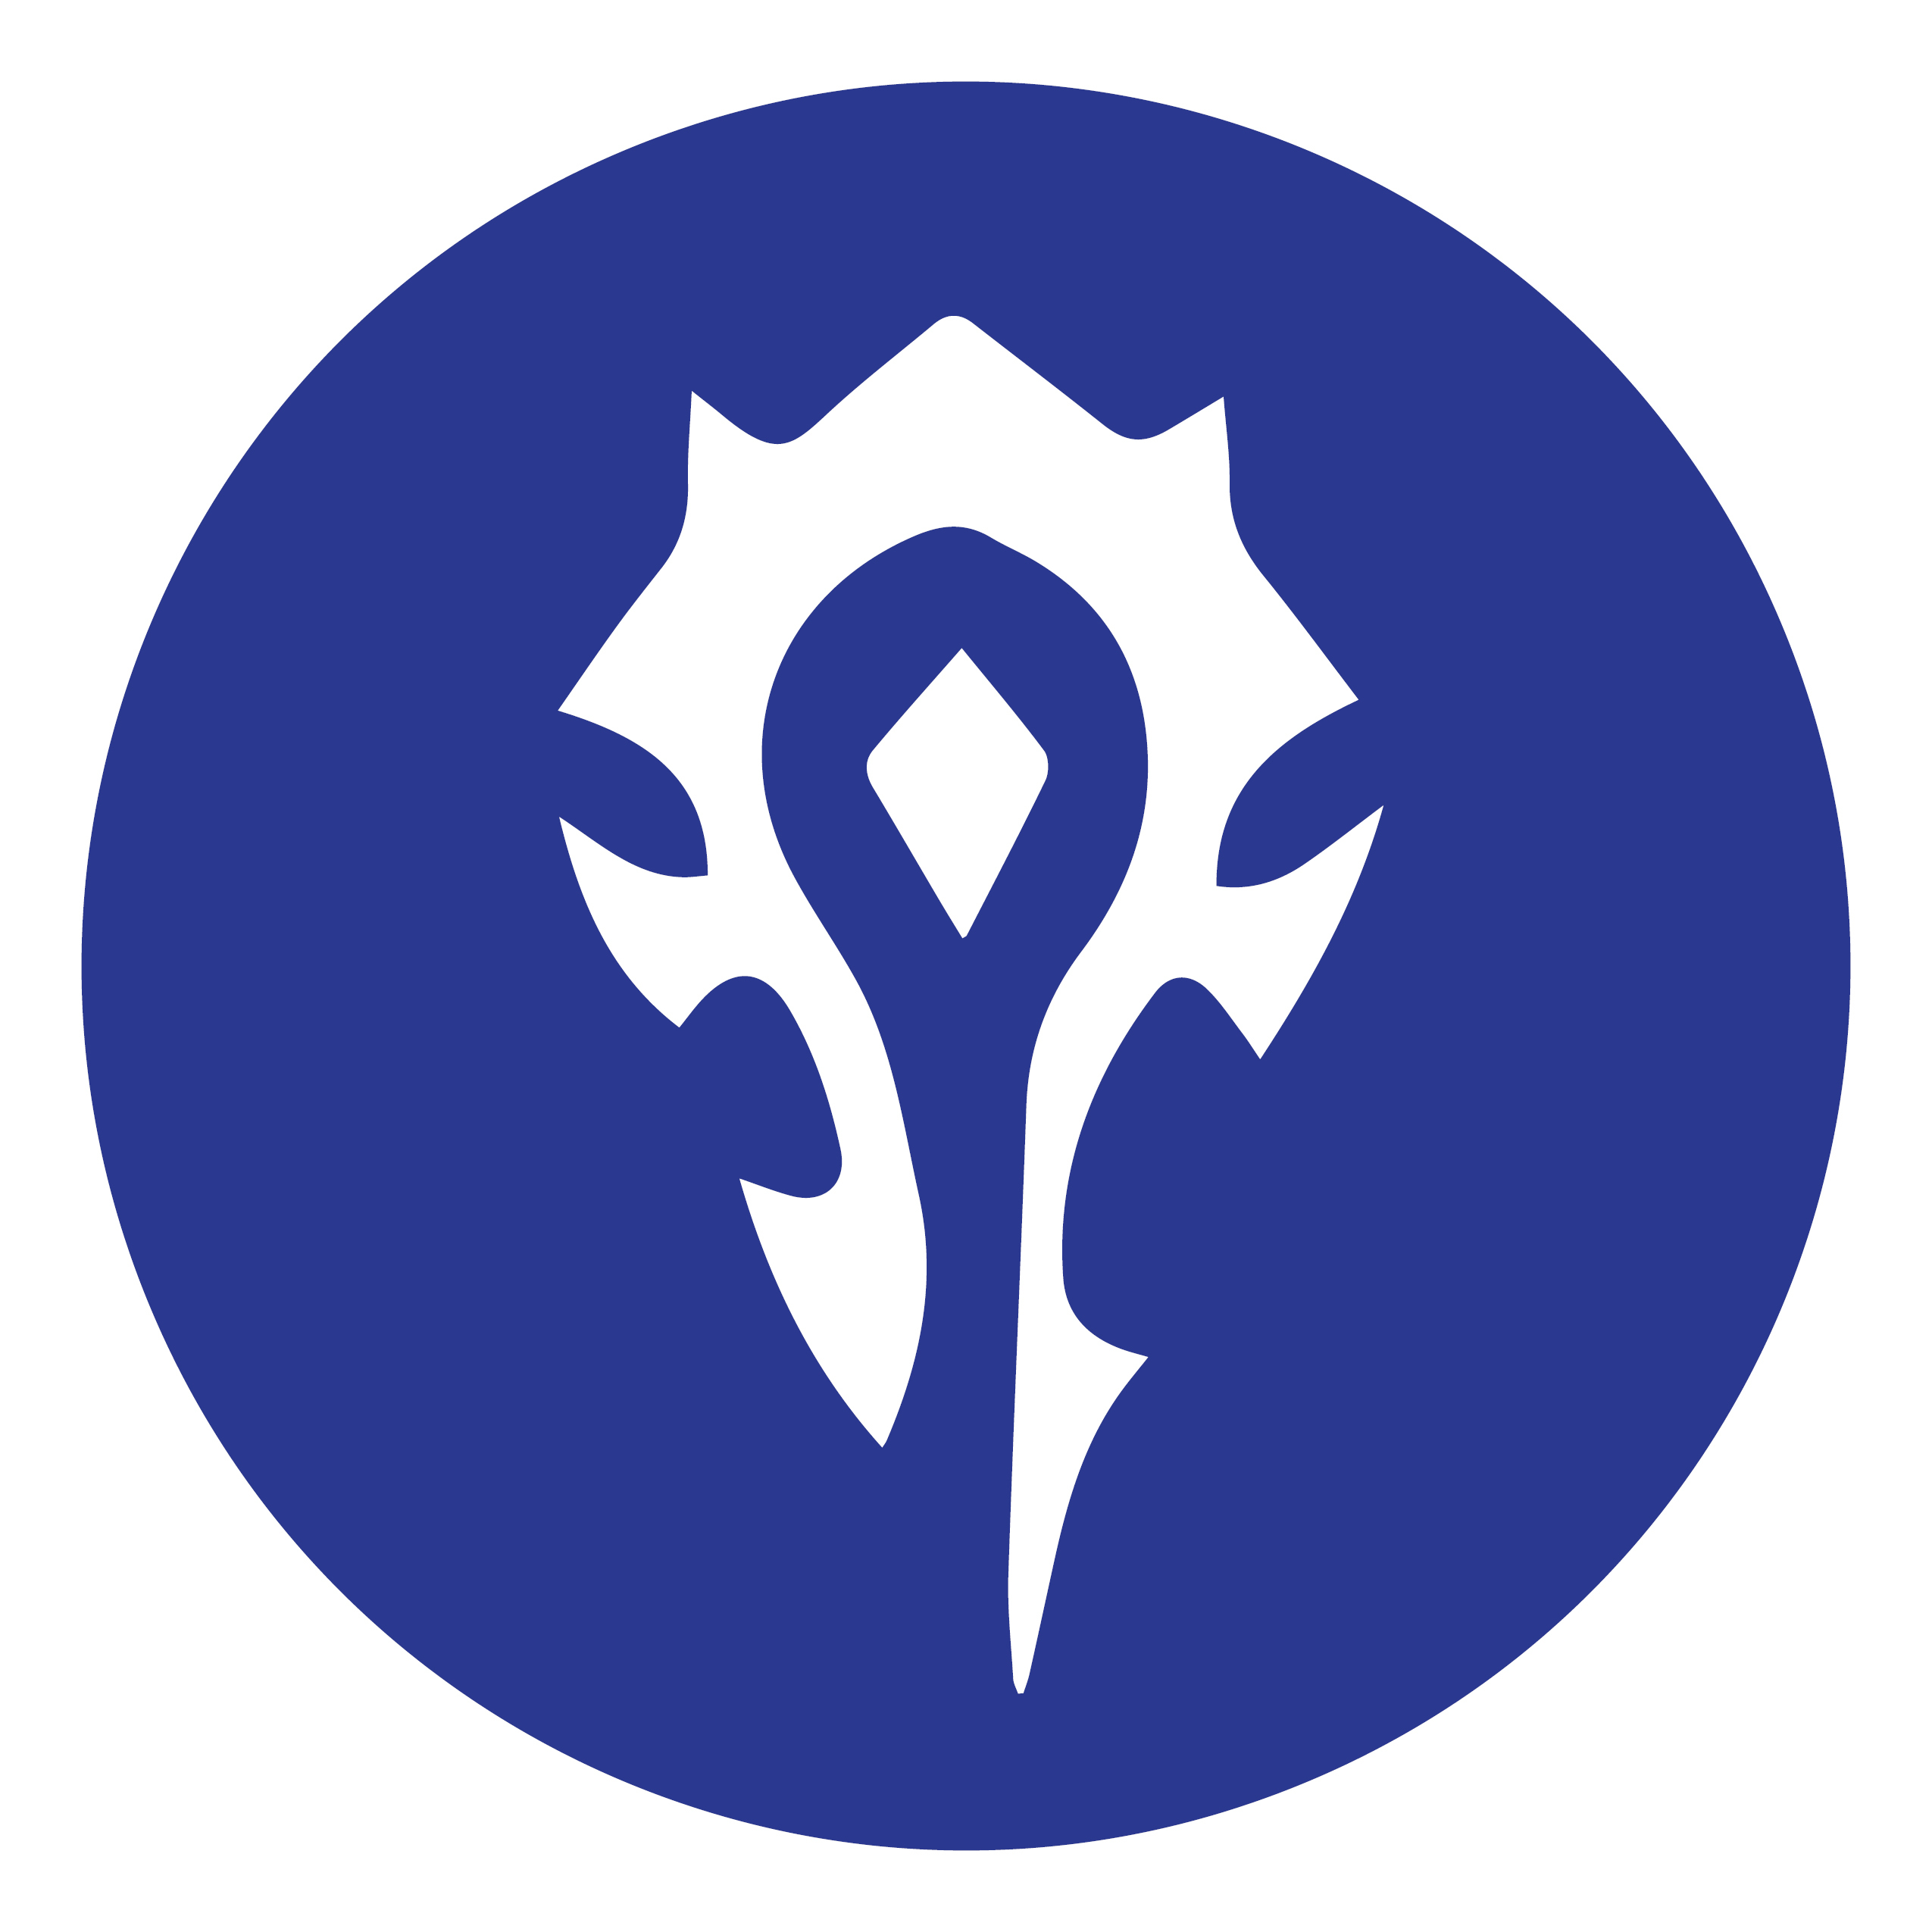 A white, spikey abstract symbol on a blue circle